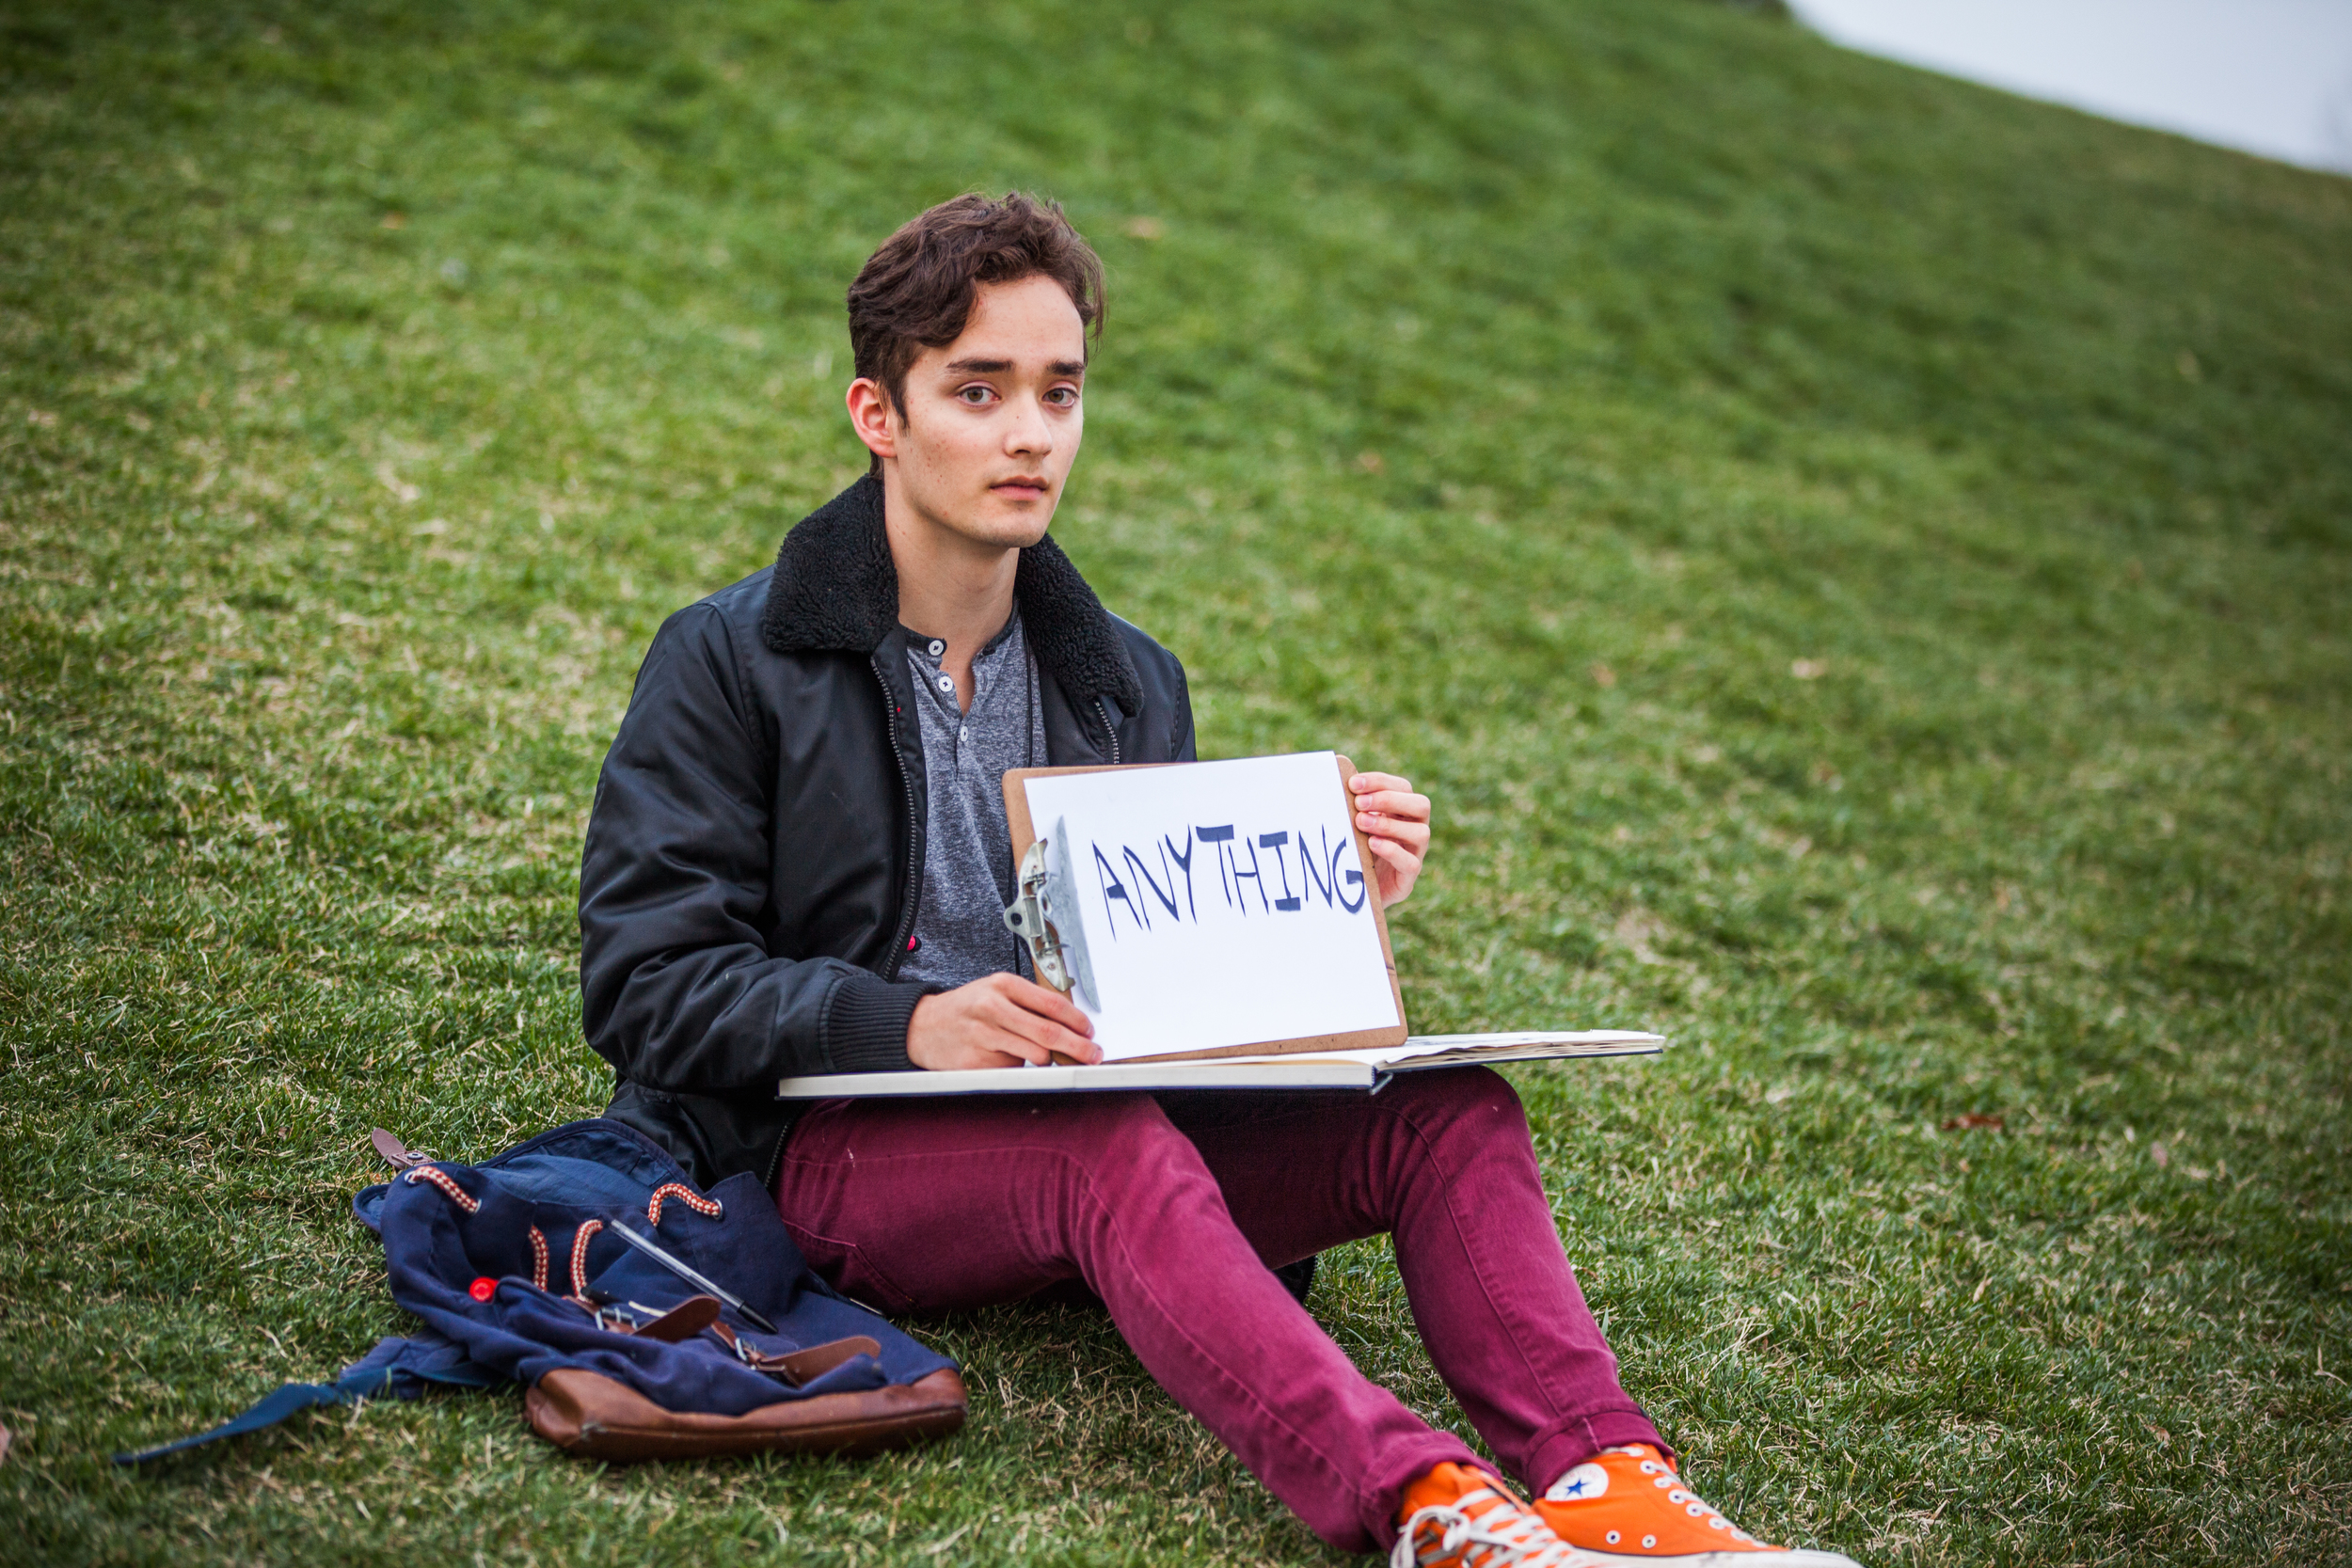 Young man sitting in the grass holding a sign saying anything.